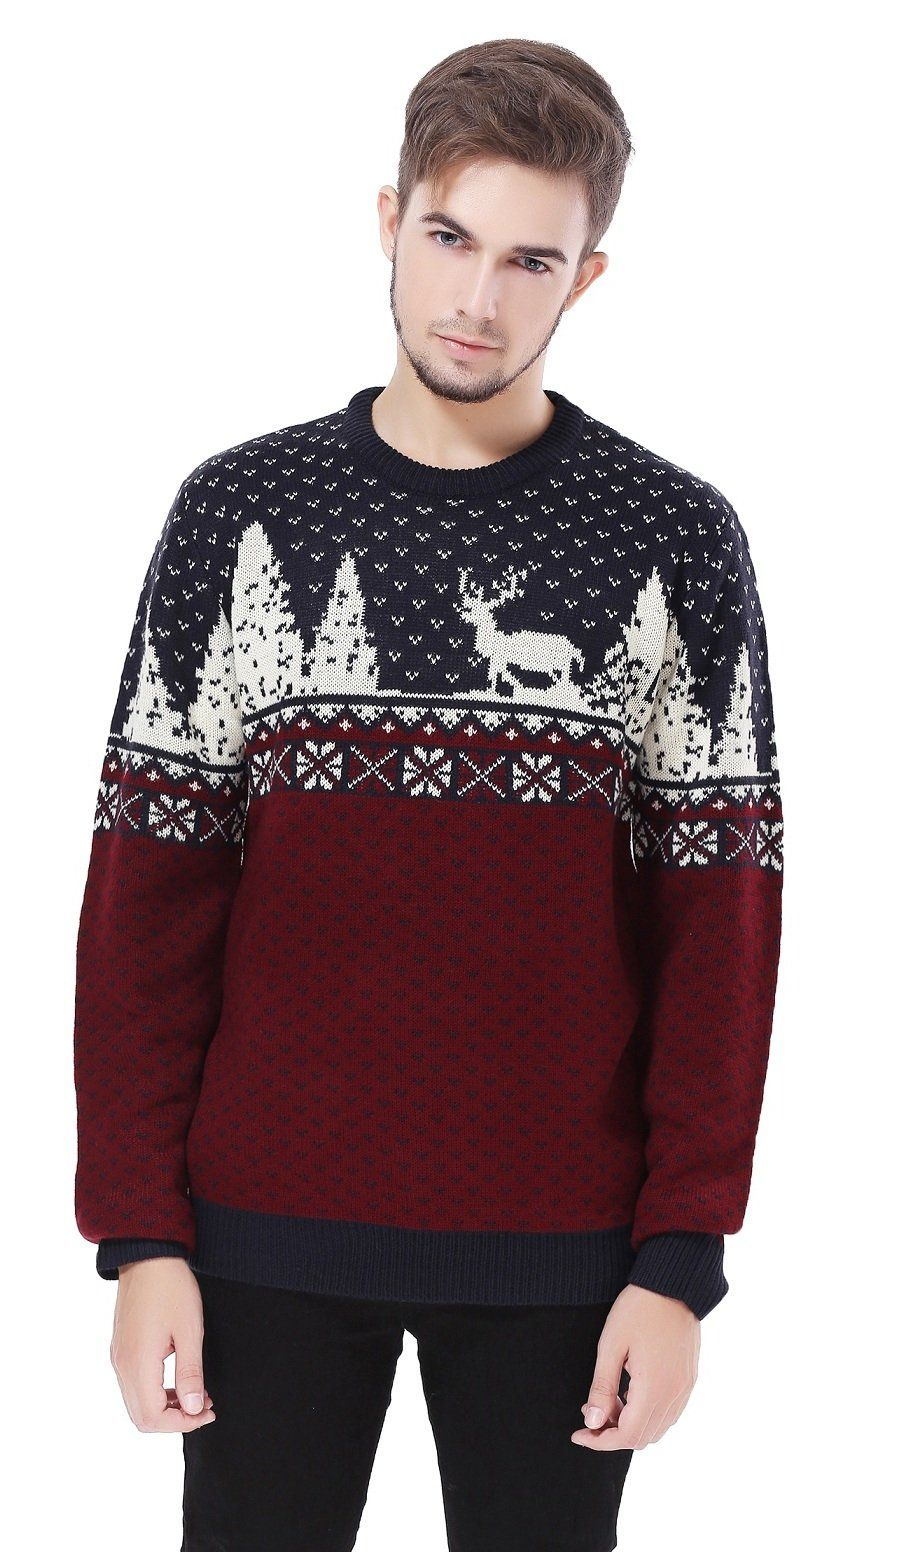 106a76c00b9 V28 Men s Christmas Sweater at Amazon Men s Clothing store